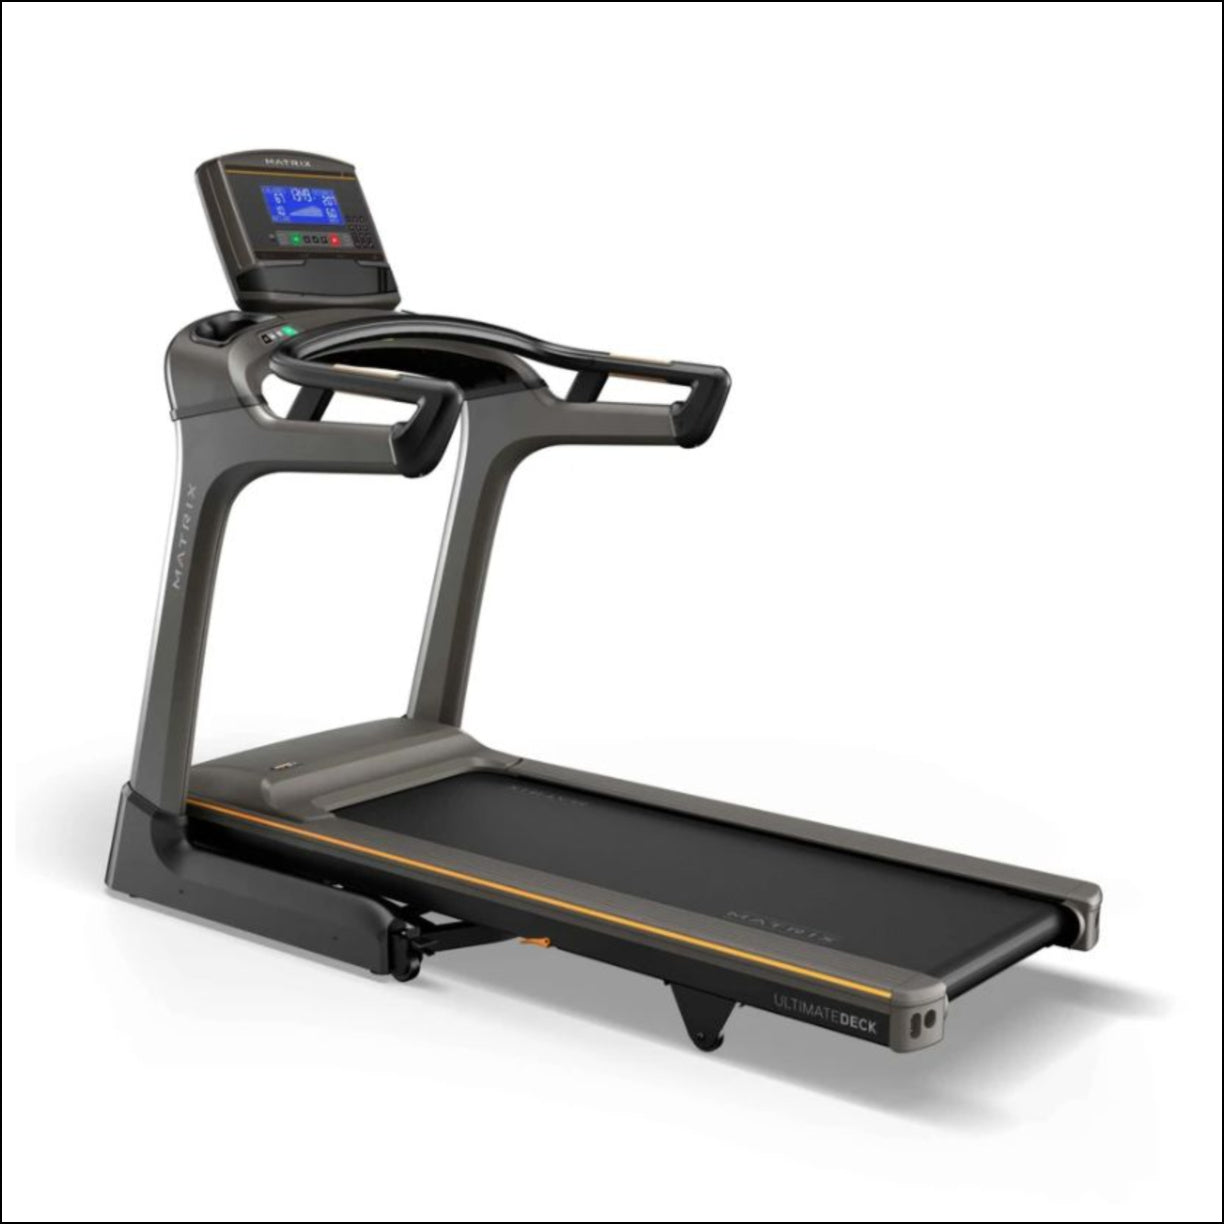 MATRIX TF30 XR Treadmill Experience a natural, powerful run with the industry's most advanced frame and deck combination. Our TF30 Treadmill includes a folding design, plus our exclusive Johnson Drive System and Ultimate Deck System.